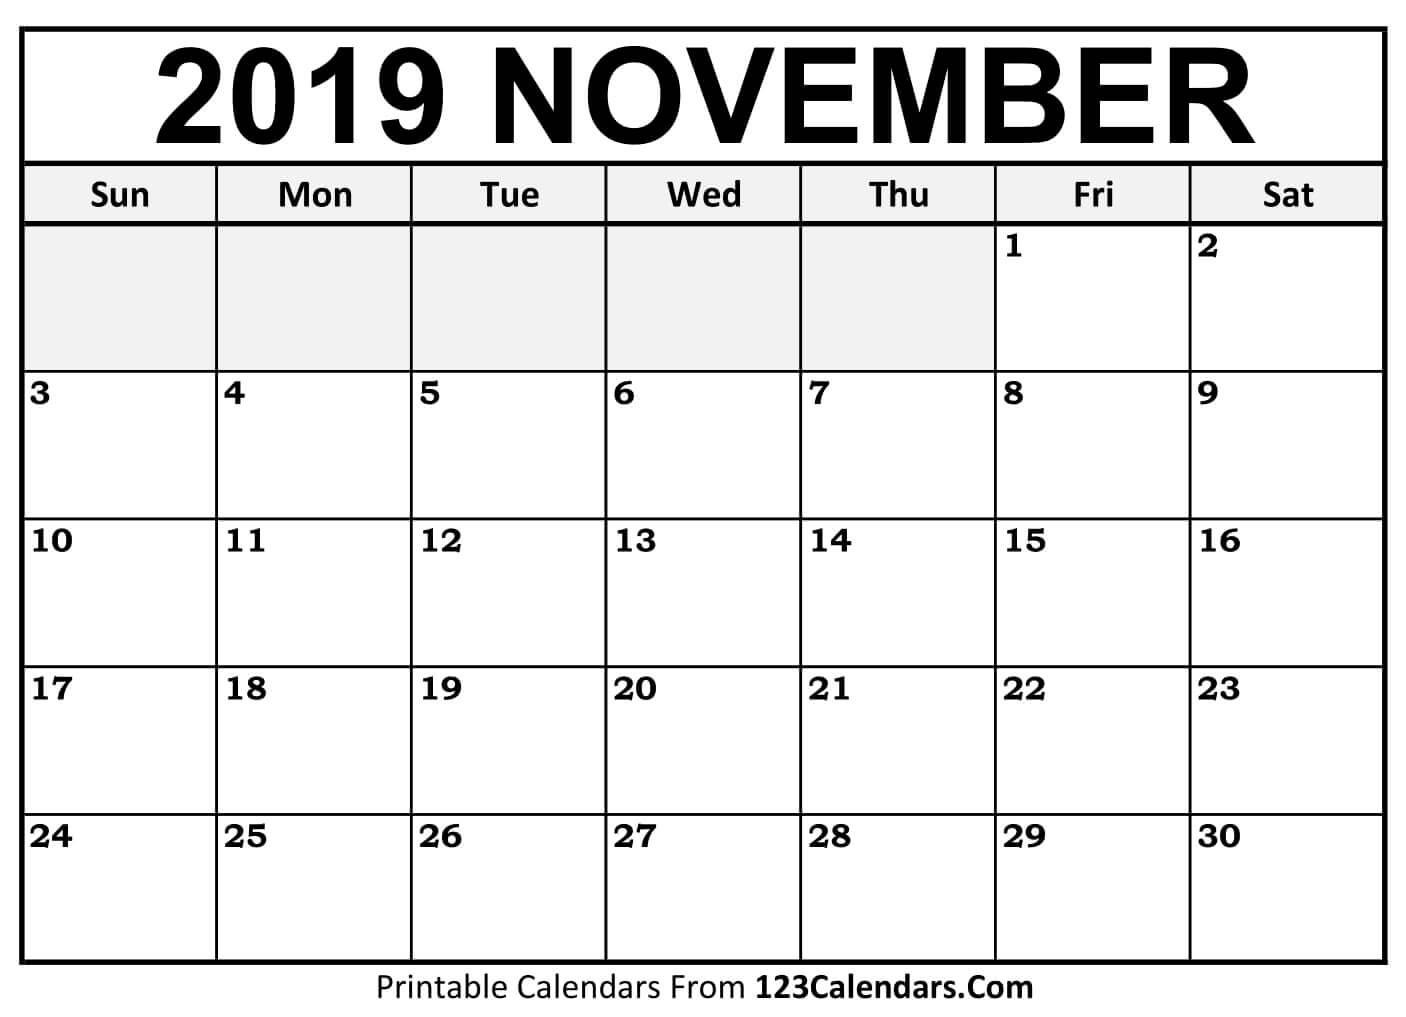 Printable November 2019 Calendar Templates - 123Calendars Calendar 2019 Nov